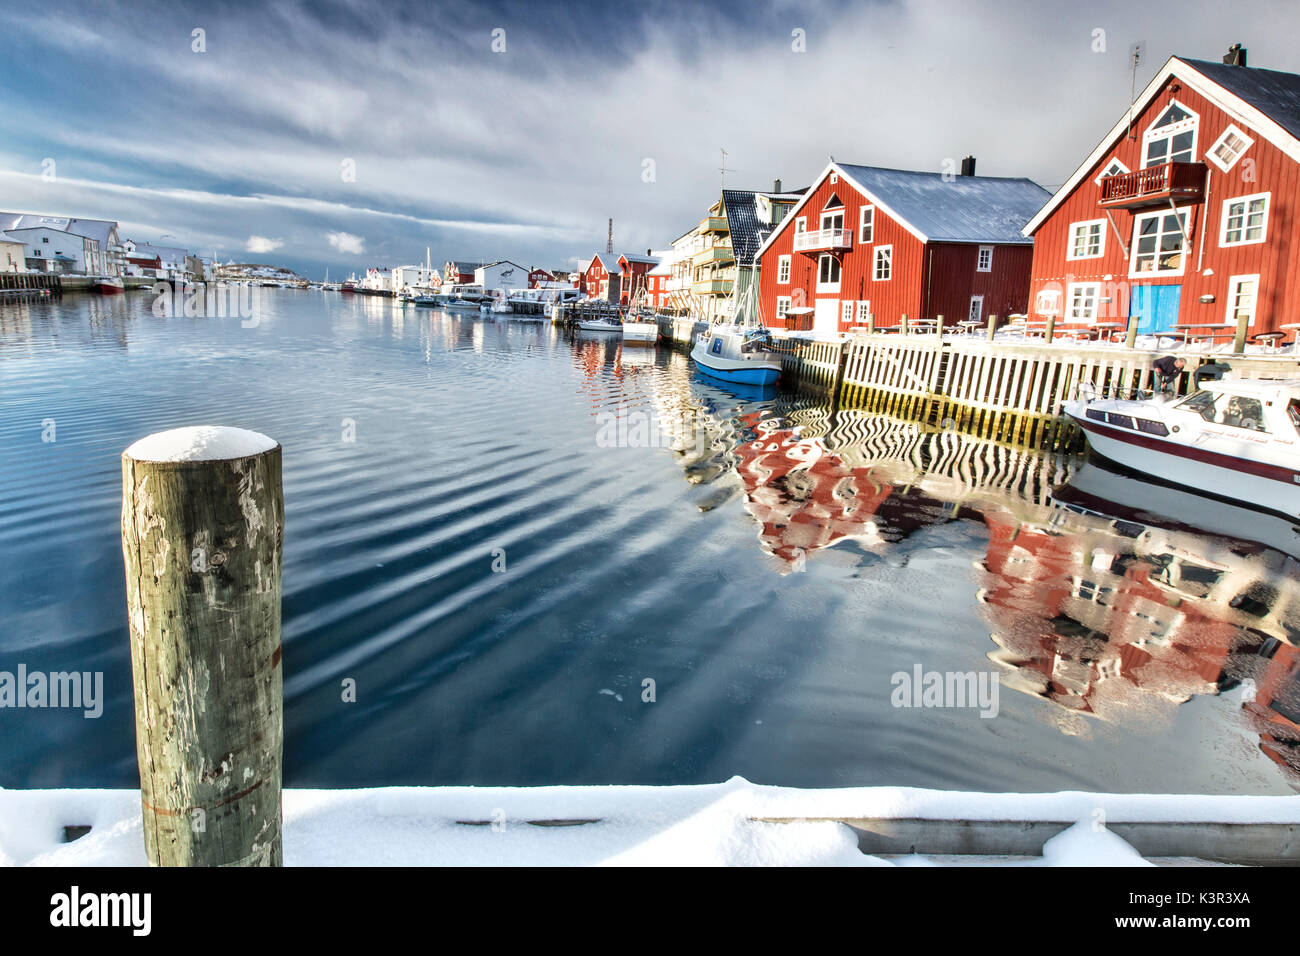 View from the pier on the channel Henningsvaer overlooked by the fishermens houses. Lofoten Islands. Norway. Europe Stock Photo